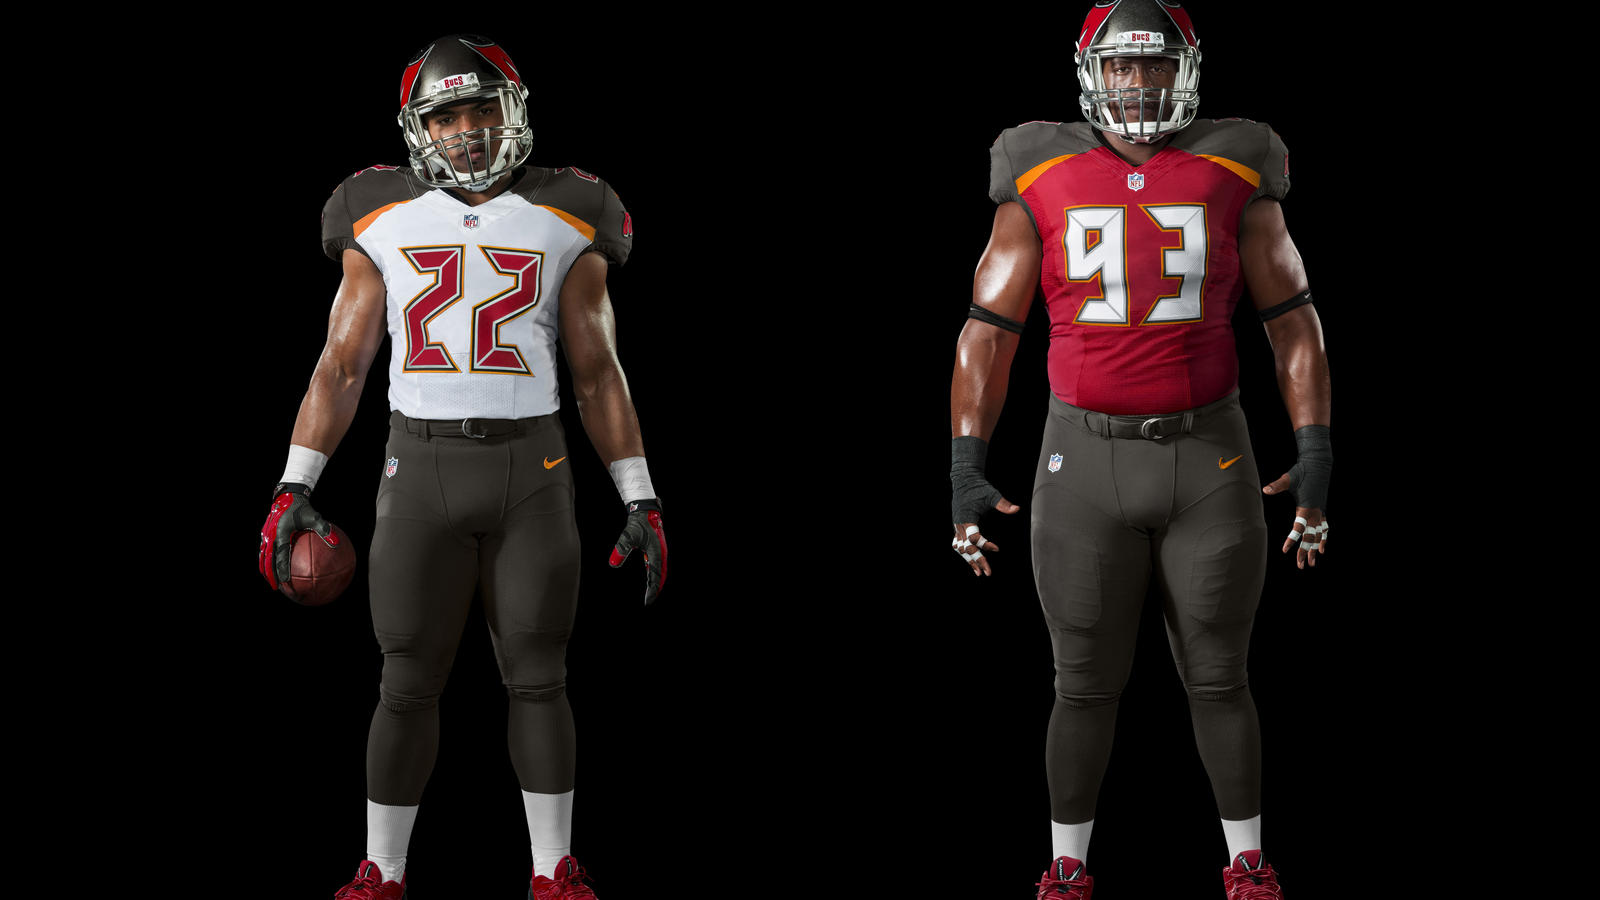 New bucs logo and uniform — photo 1